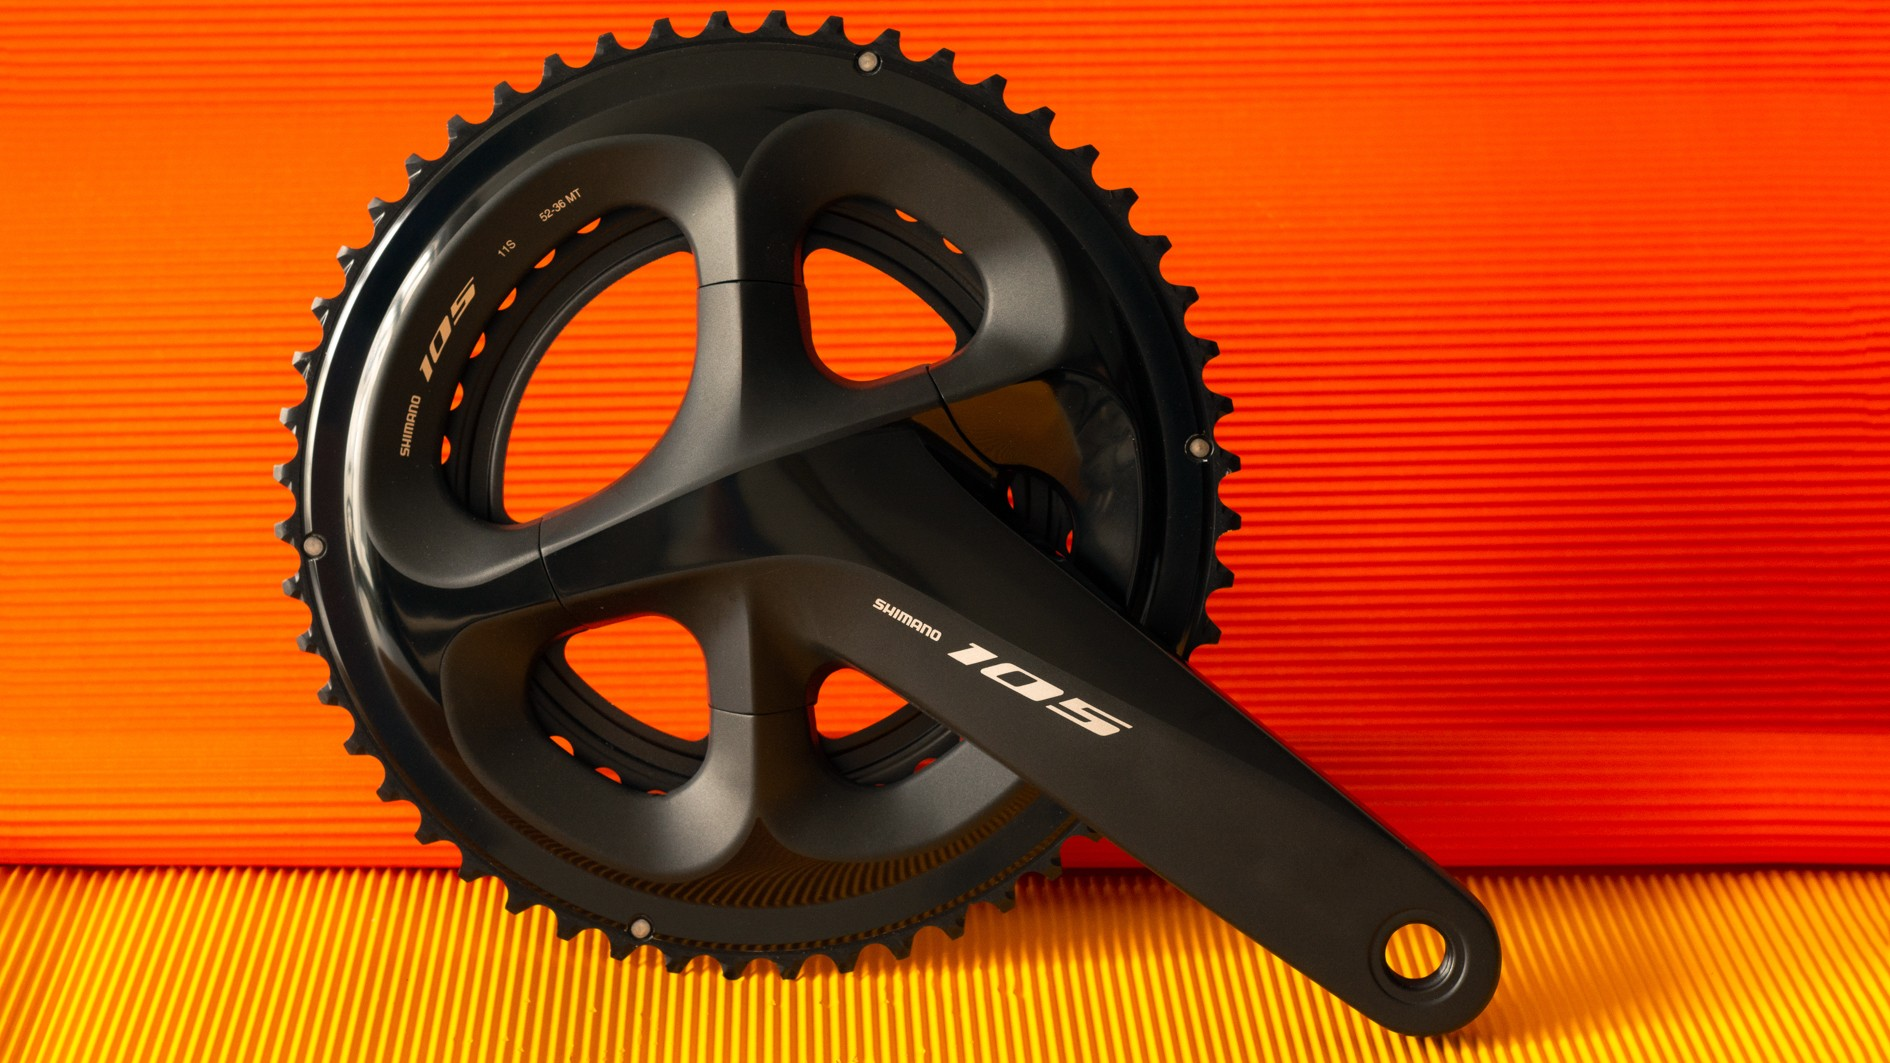 Save for the finish, the new 105 cranks are nearly identical to the higher end models